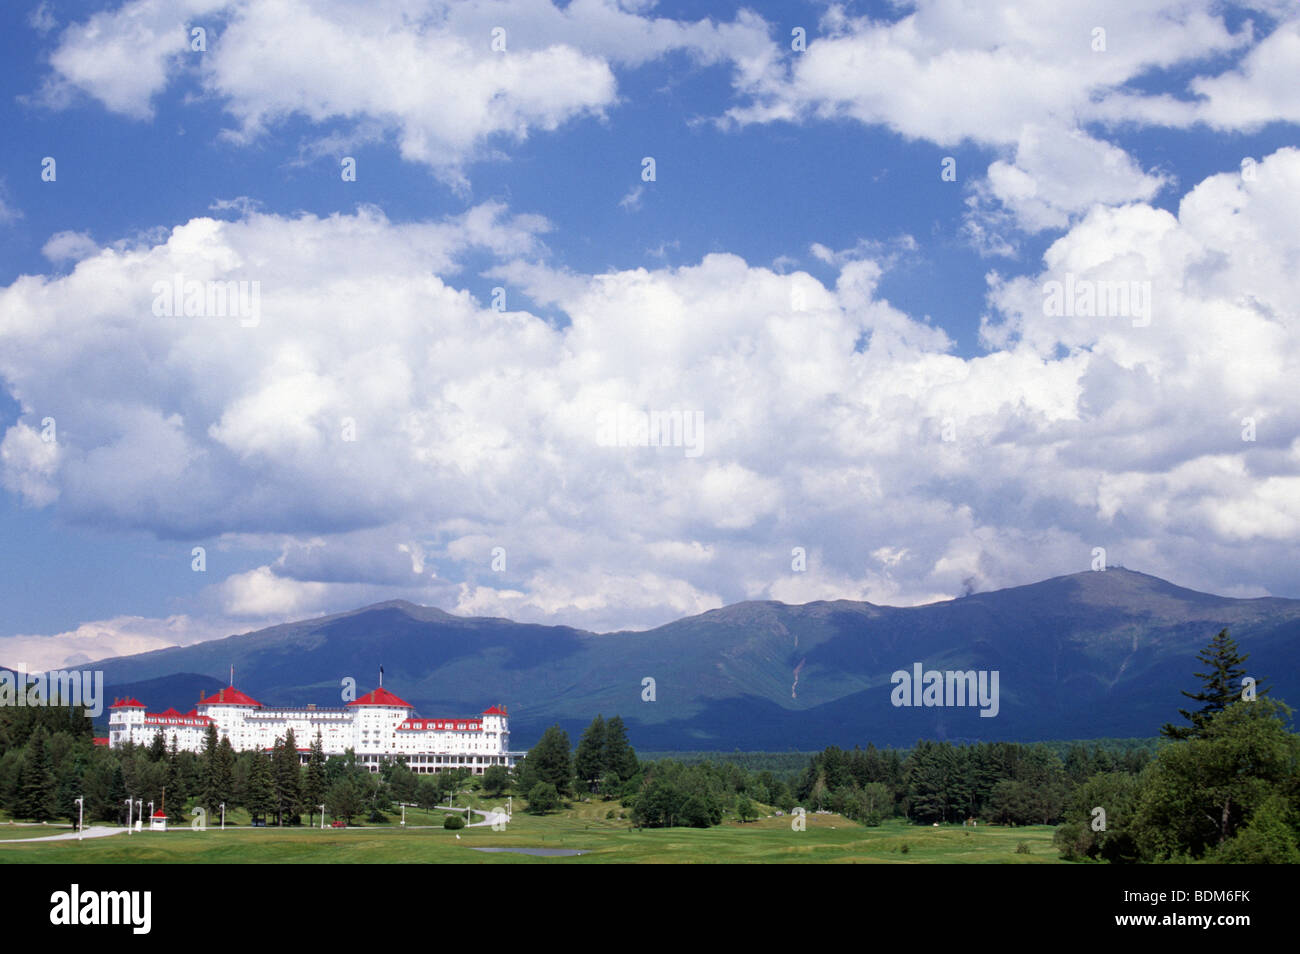 the omni mount washington hotel and resort in the white mountains